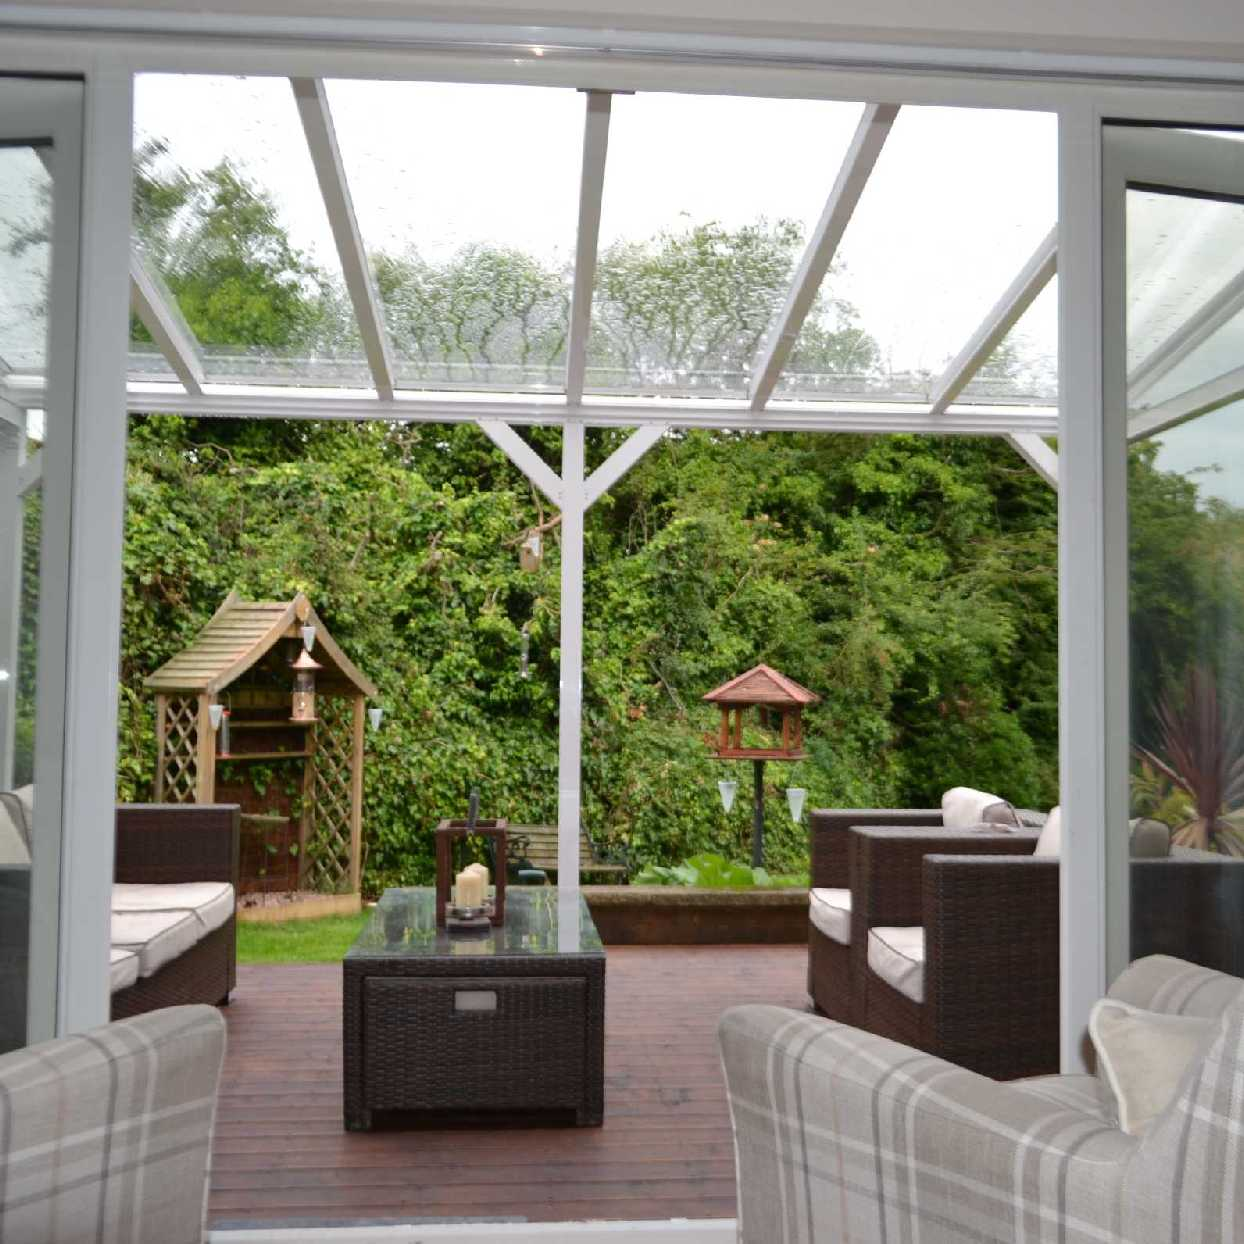 Great selection of Omega Smart White Lean-To Canopy UNGLAZED for 6mm Glazing - 10.5m (W) x 2.5m (P), (5) Supporting Posts